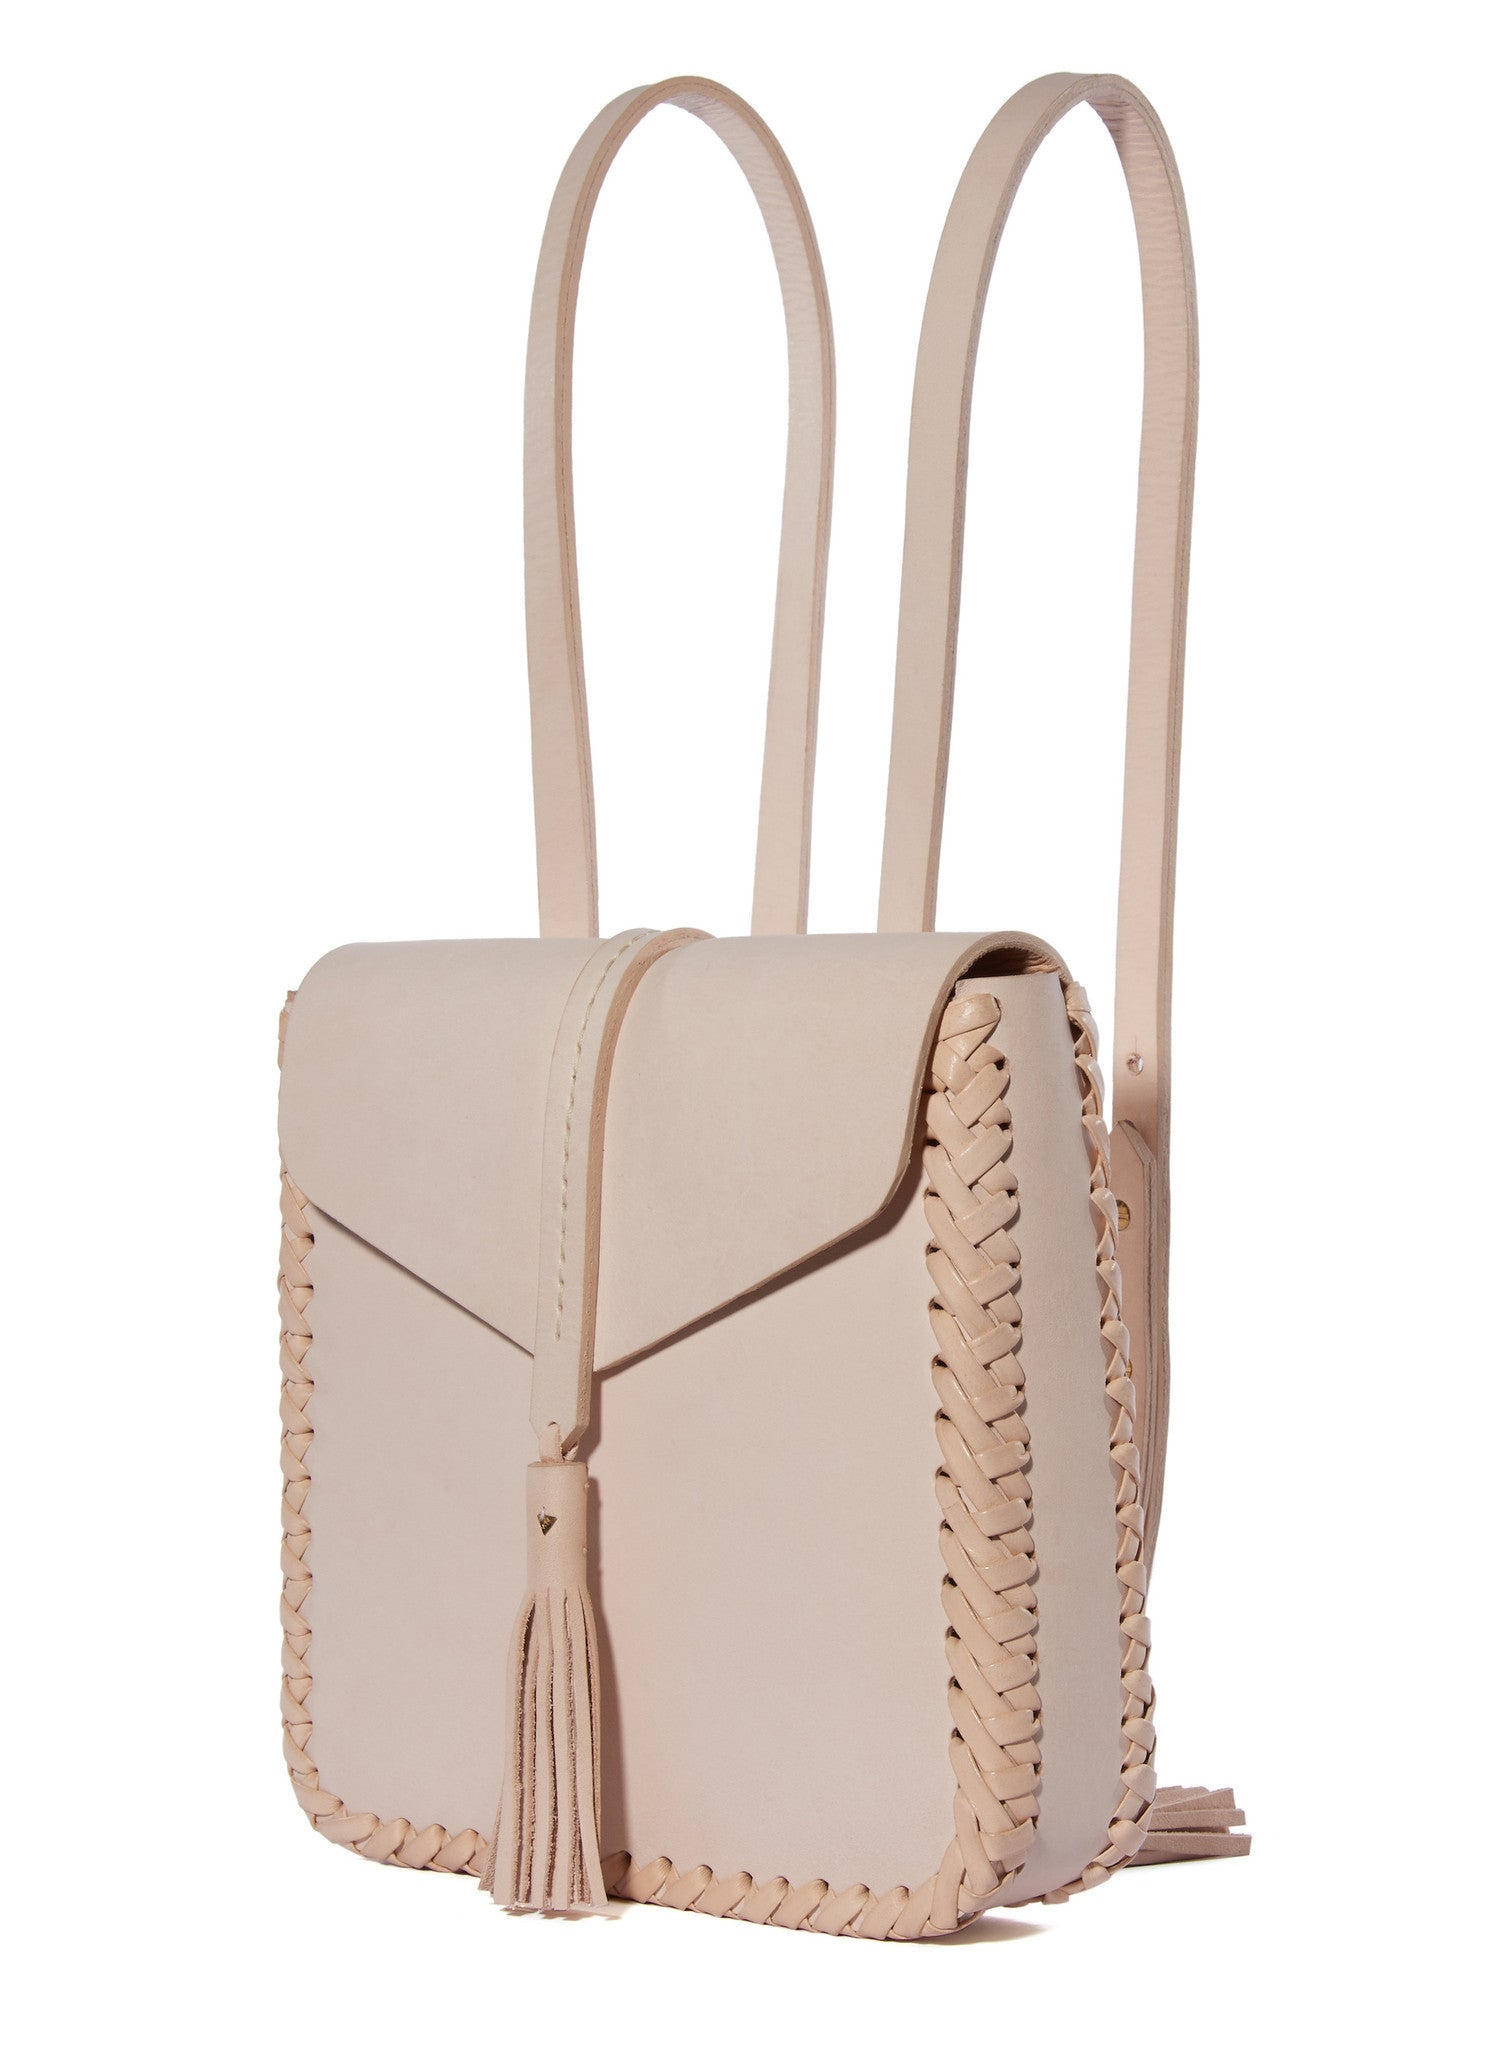 Leather Saddle Flap Mini Backpack Wendy Nichol Handbags Handmade in NYC Natural Pink Leather